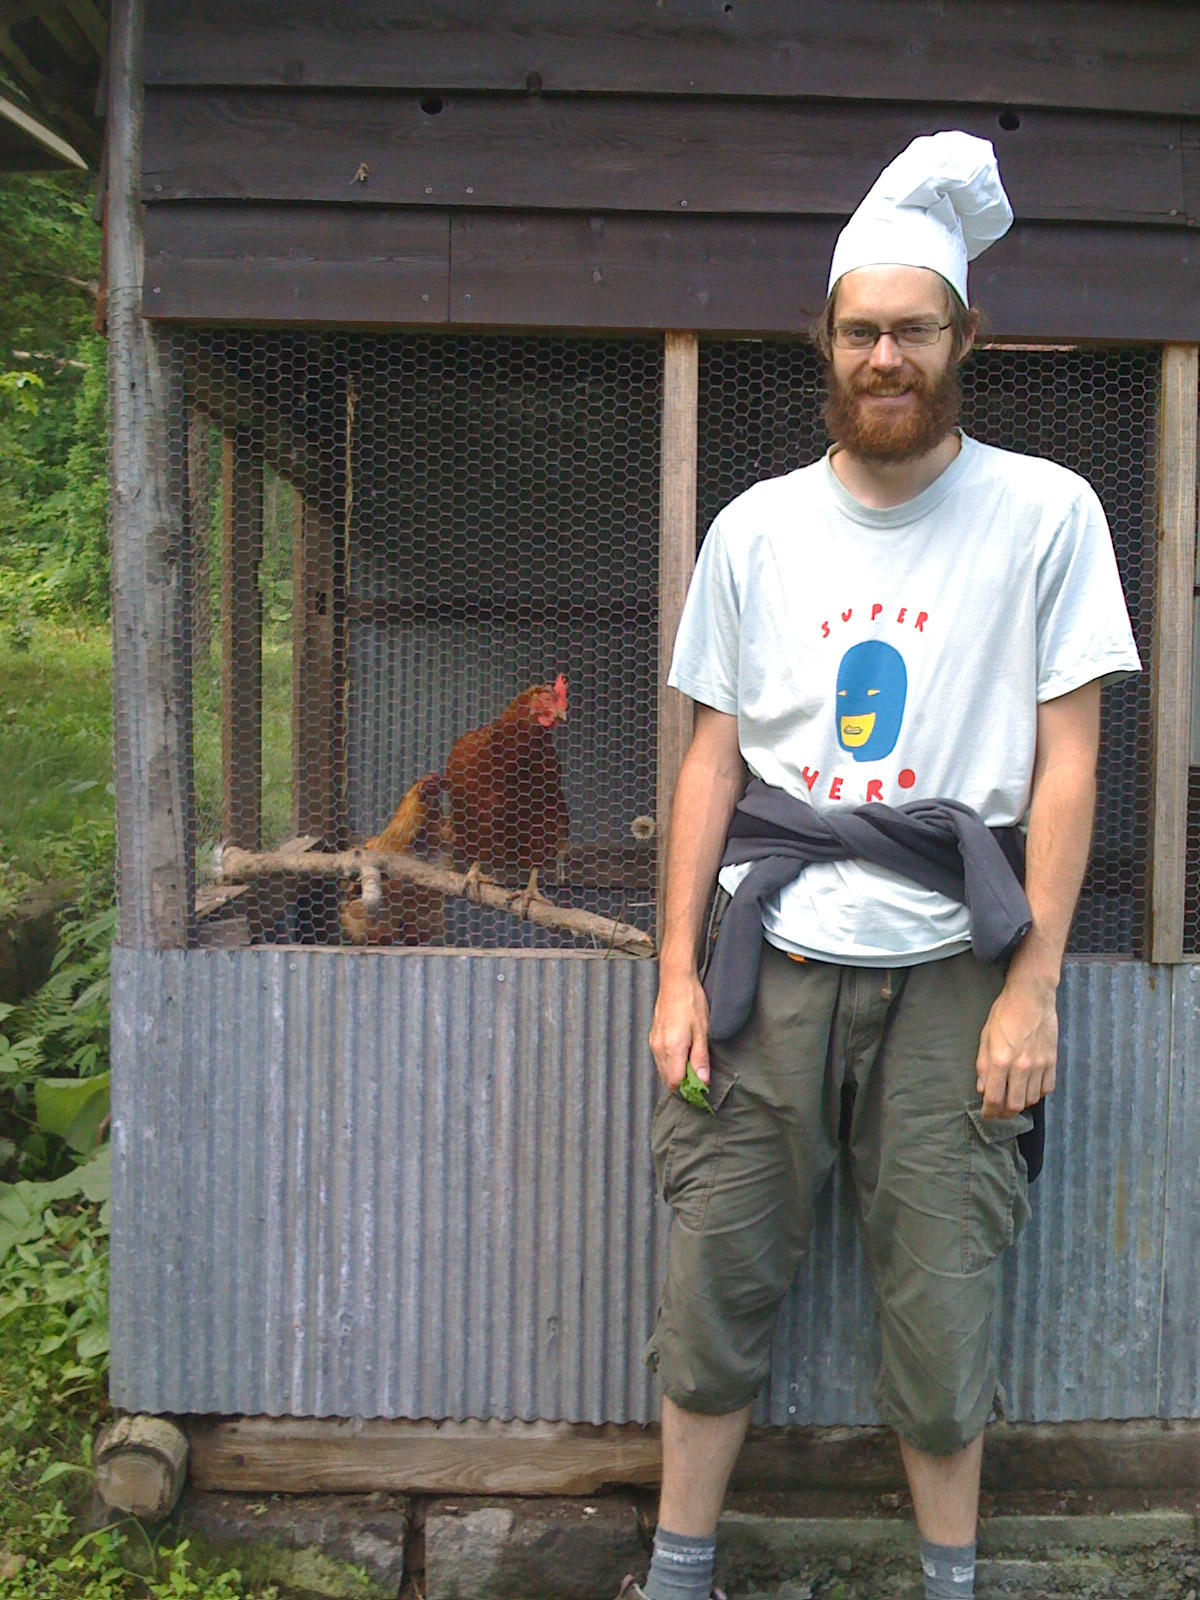 Chefs Hat - Lake Toya, Japan with the friendly chickens